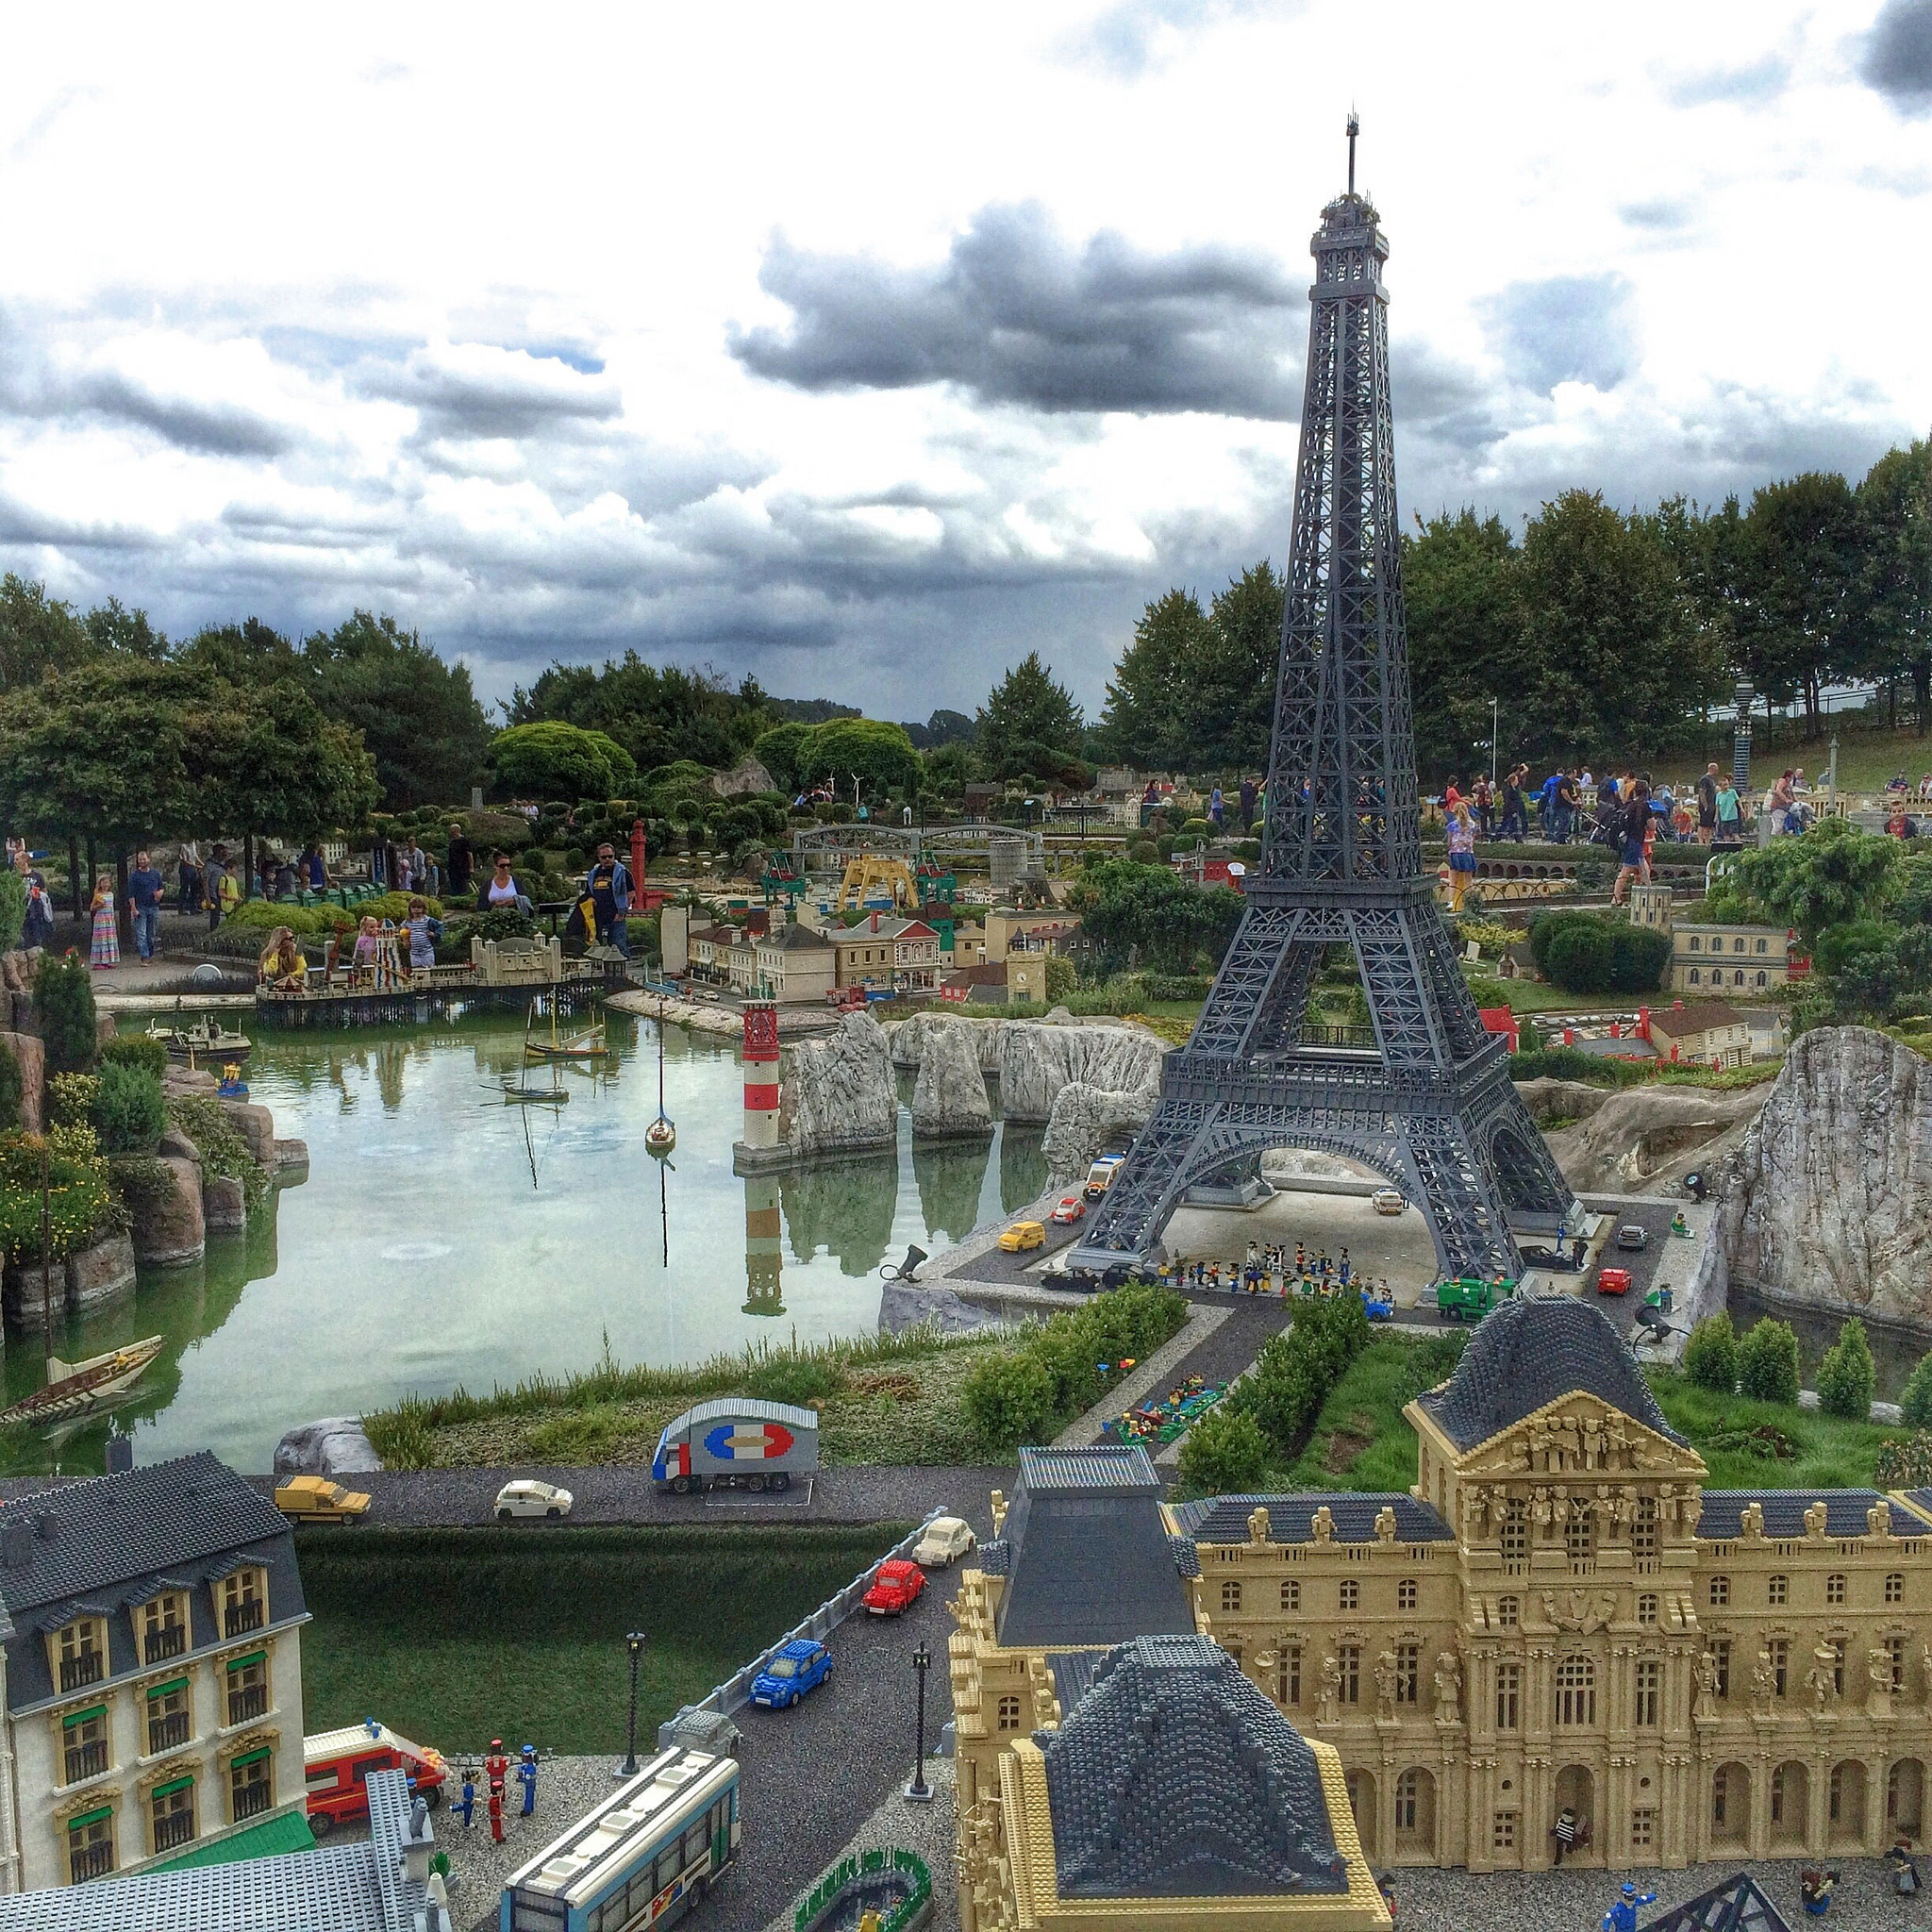 Paris in Lego, including the Eiffel Tower